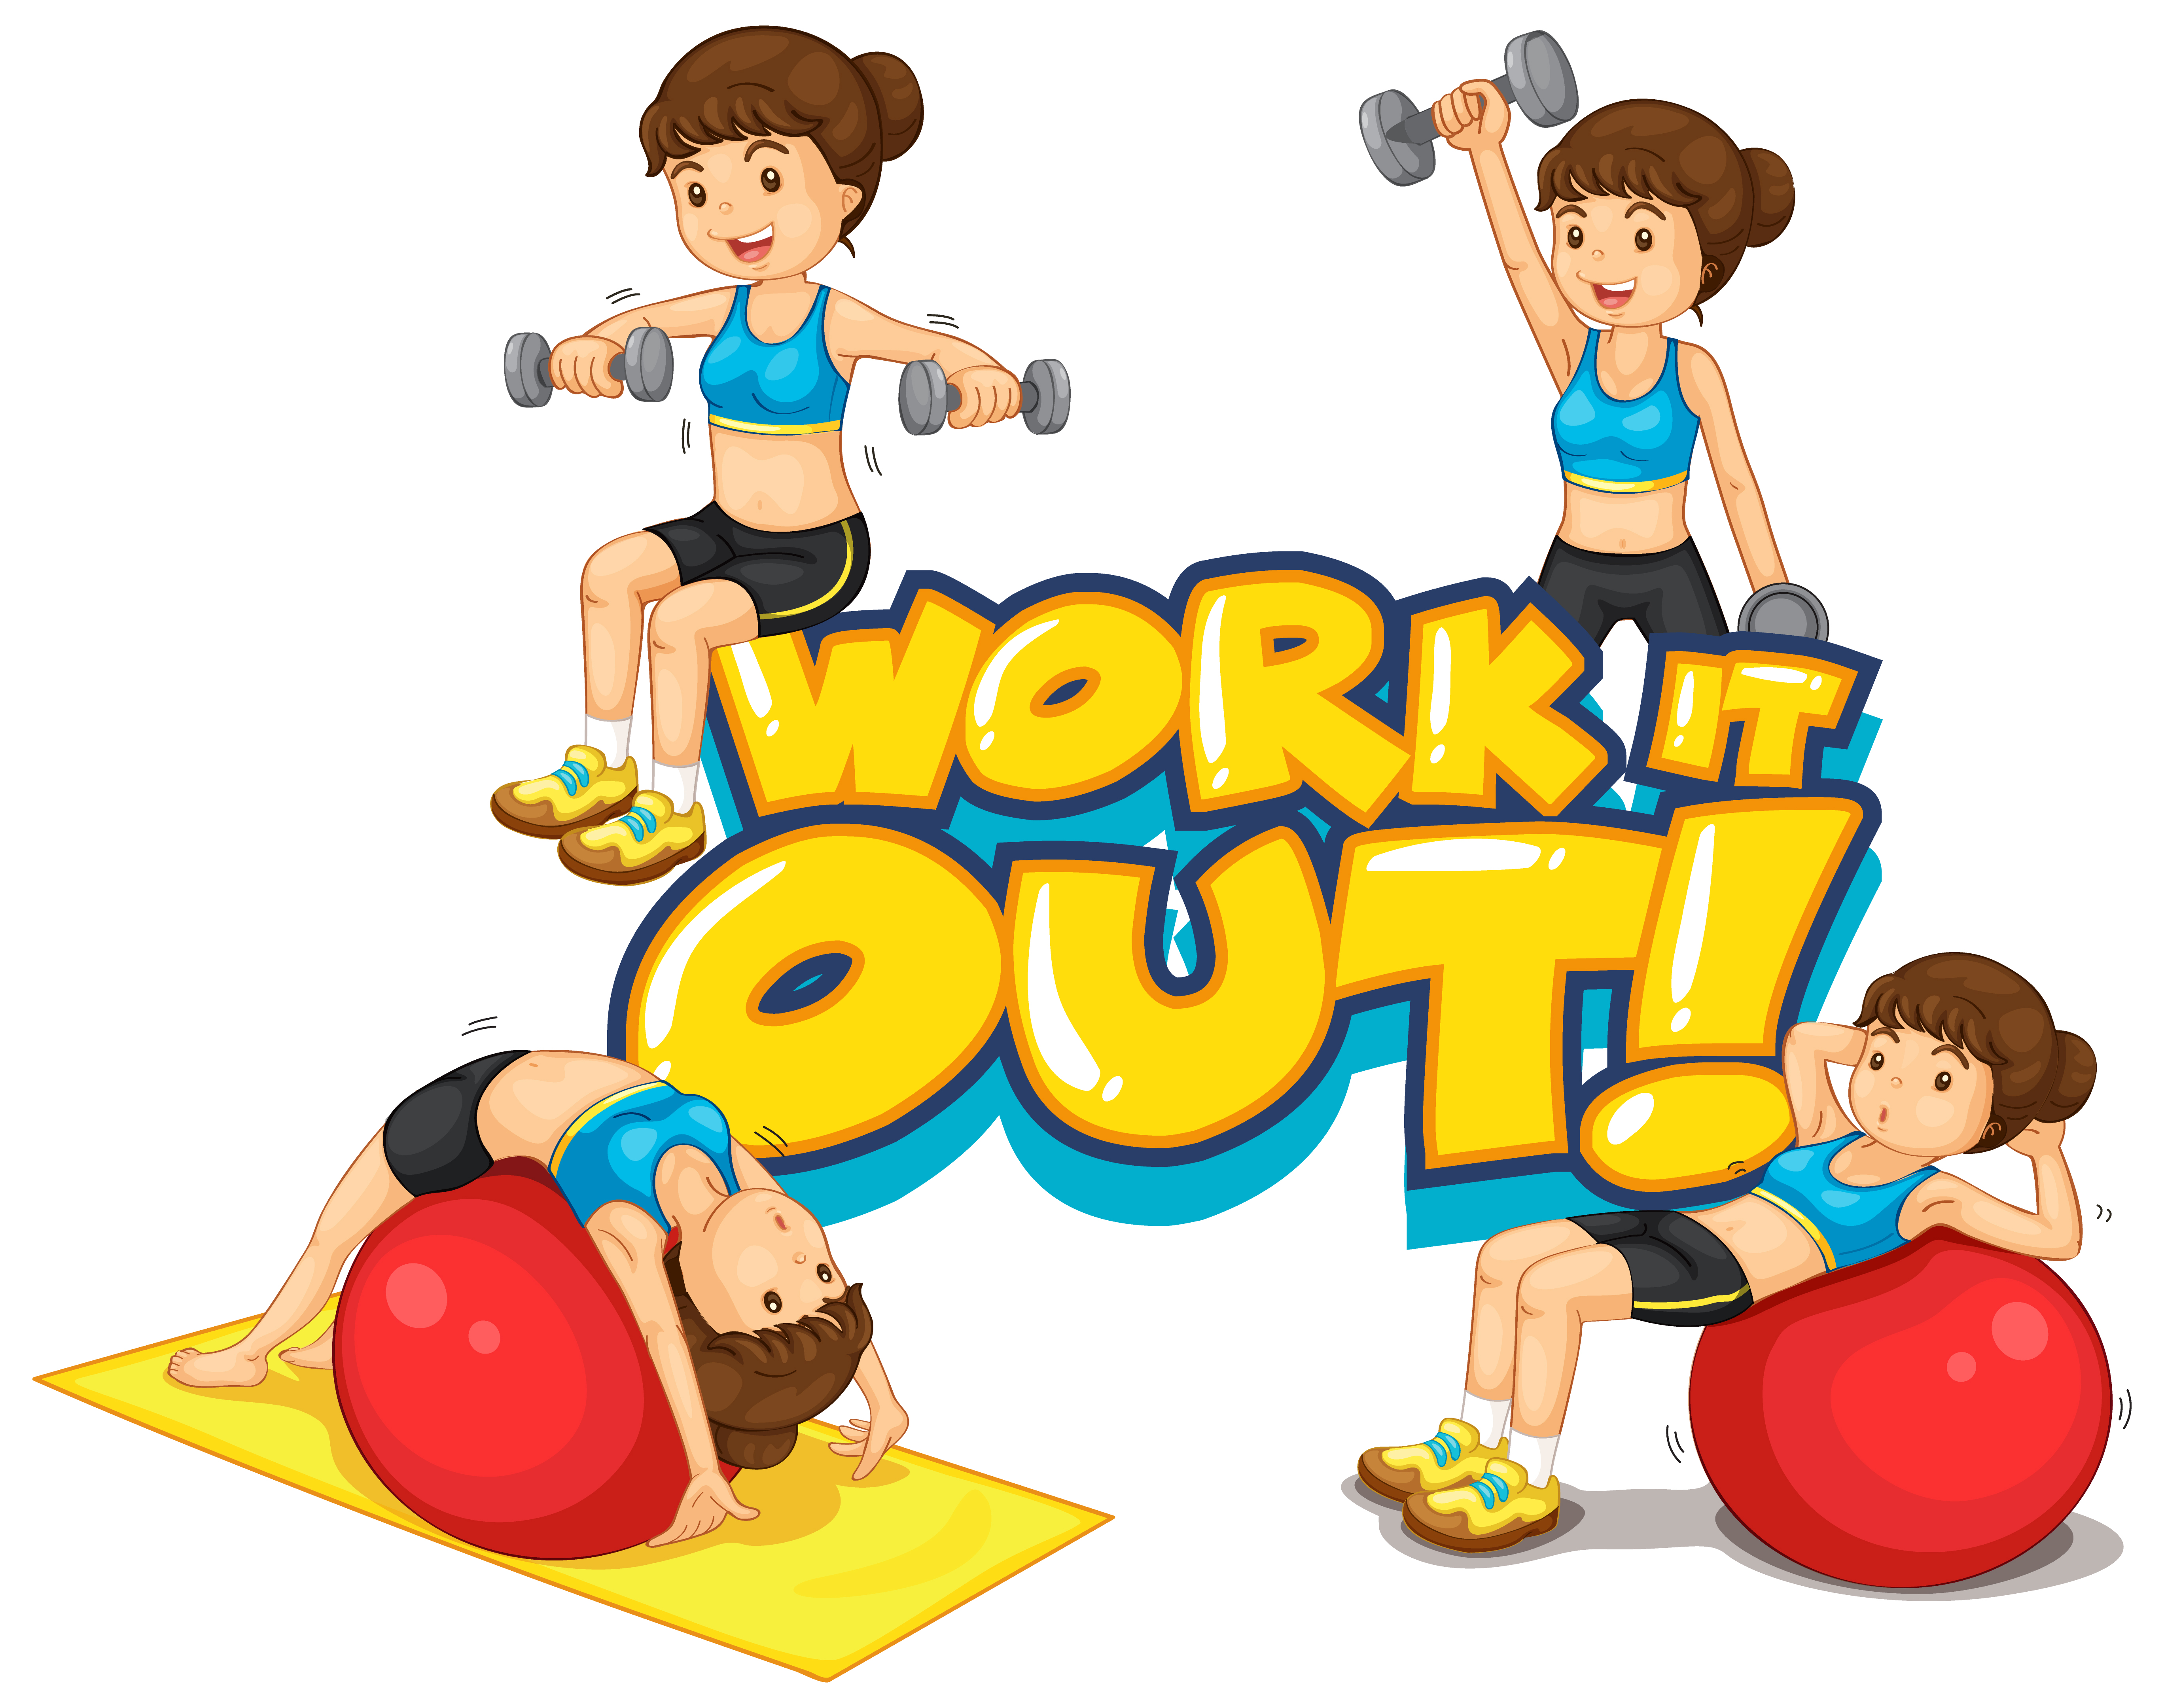 Font Design For Word Work It Out With Woman Doing Exercise Download Free Vectors Clipart Graphics Vector Art